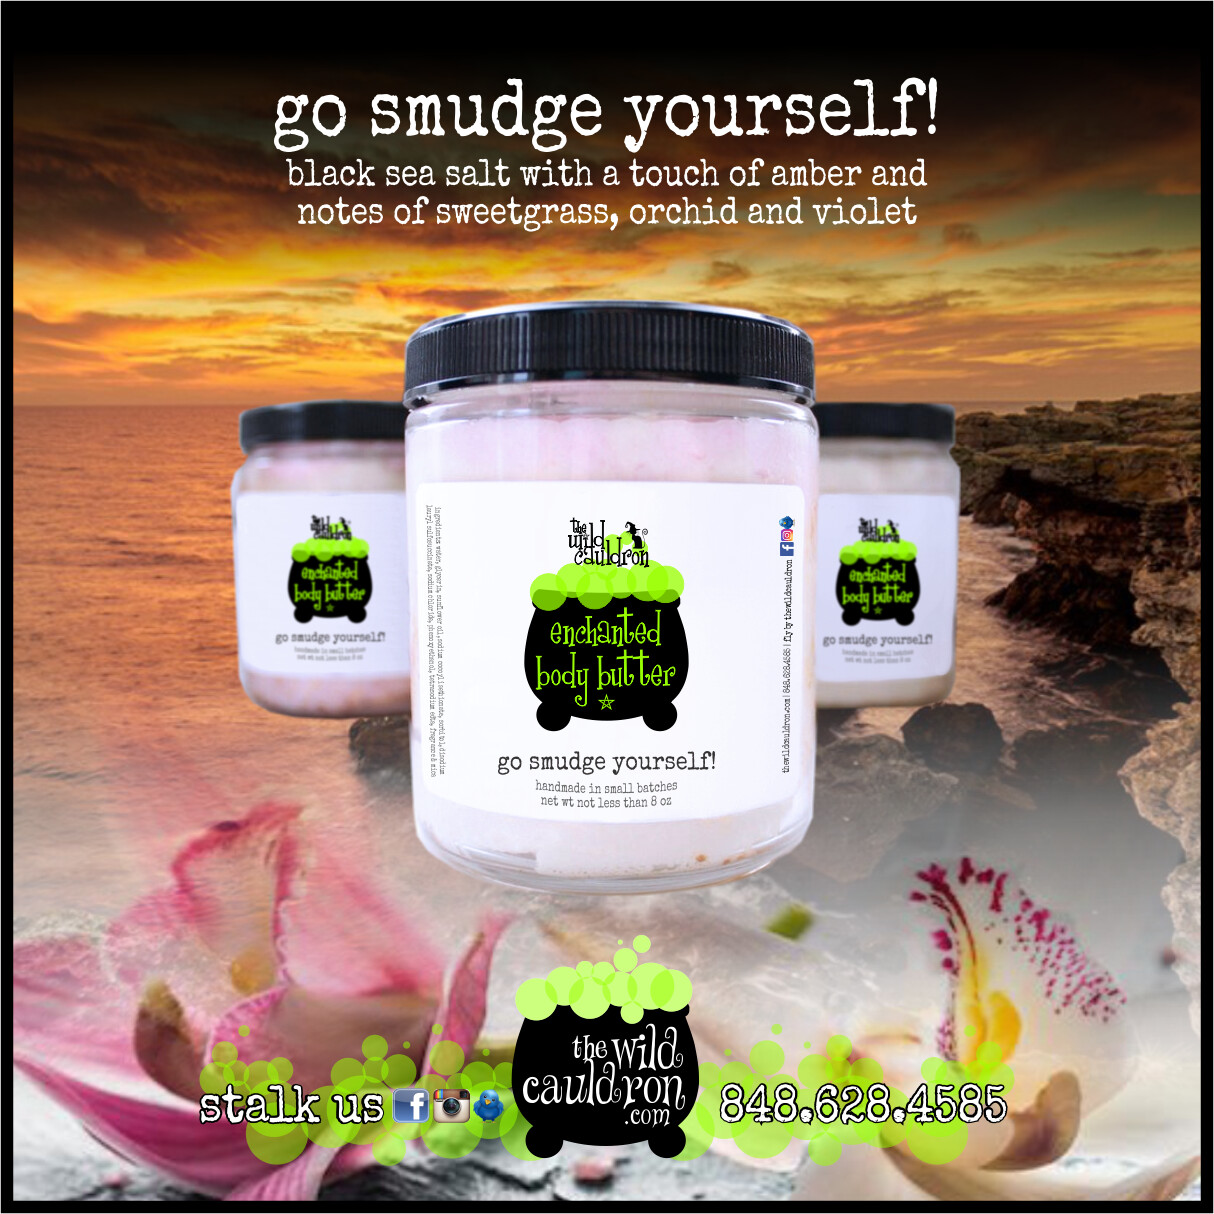 Go Smudge Yourself! Enchanted Body Butter (8 oz)